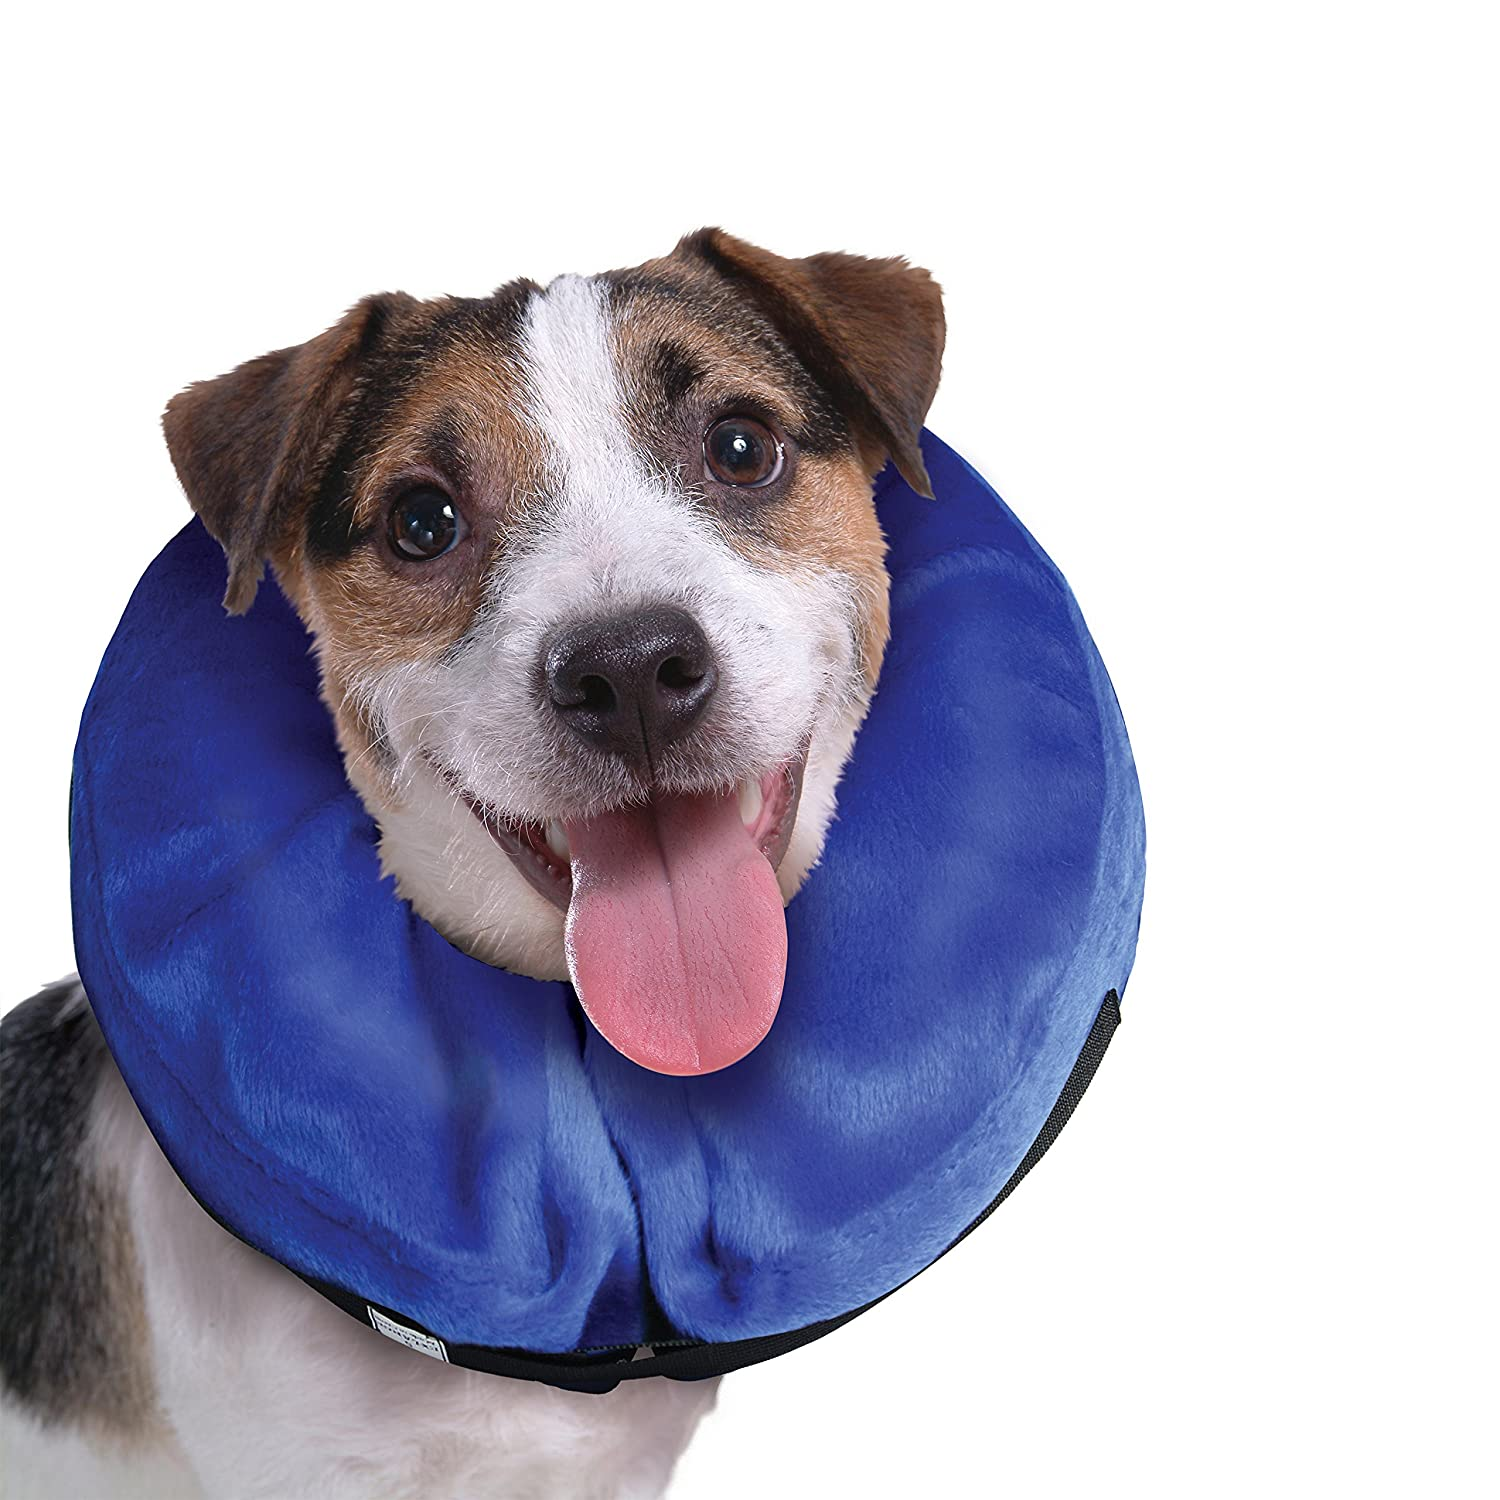 Amazoncom KONG Cloud ECollar For Cats And Dogs Small Pet - Dog portrait photography shows how they hate wearing the cone of shame